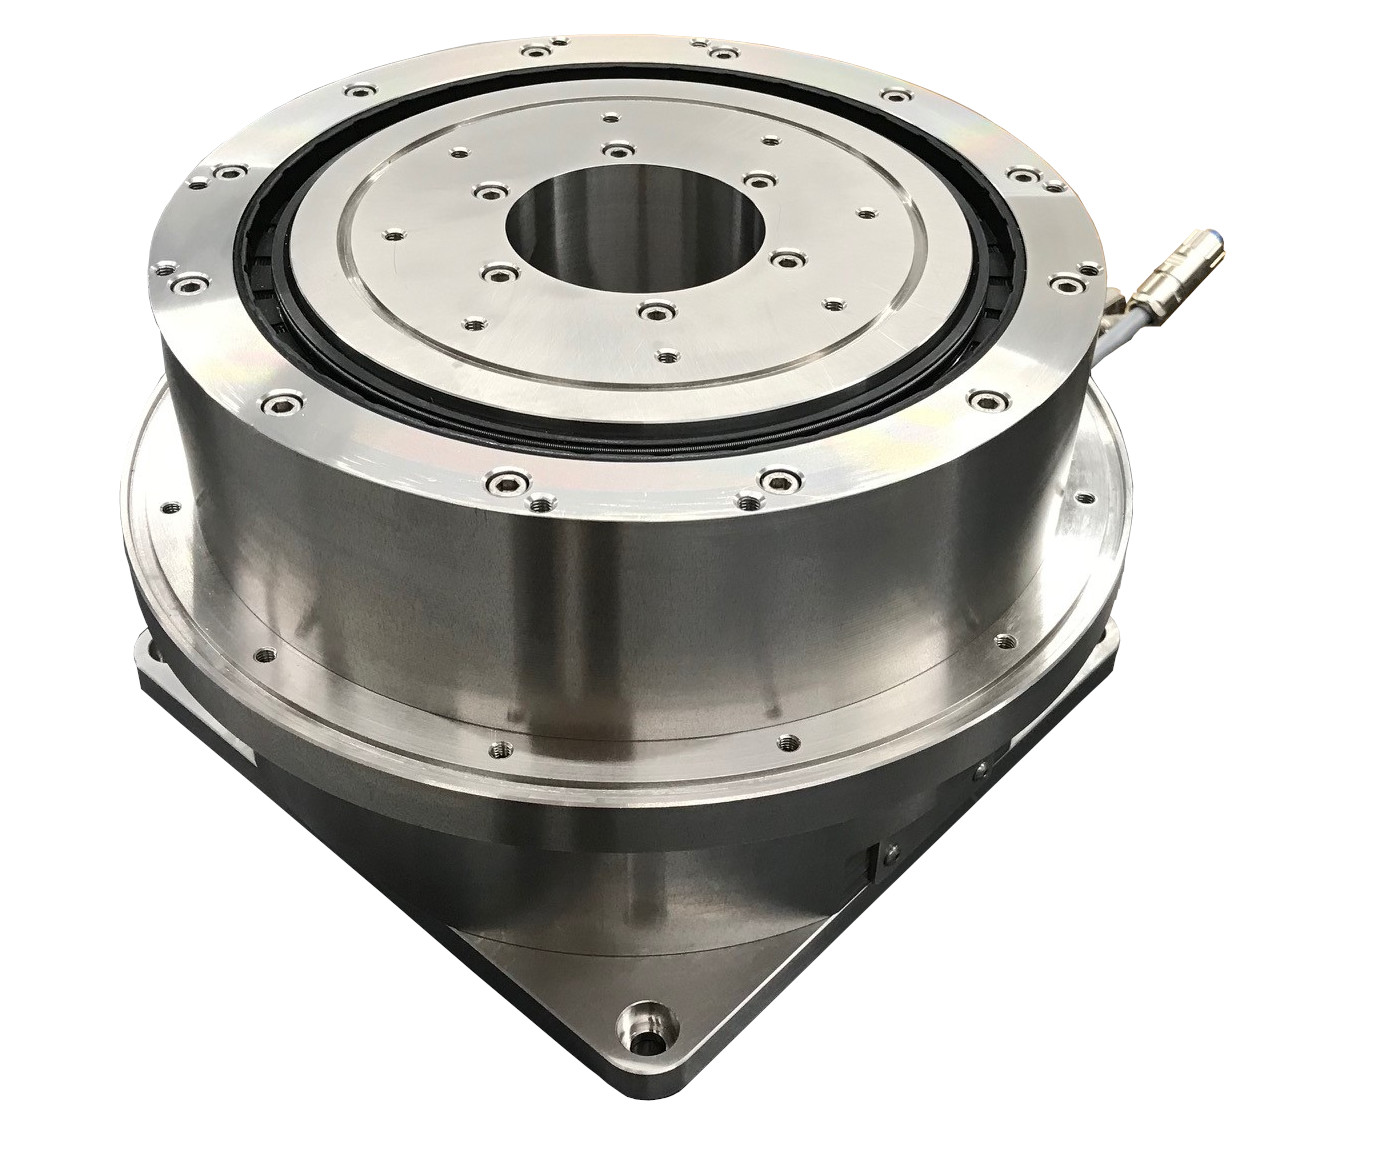 Mechanical bearing rotary table